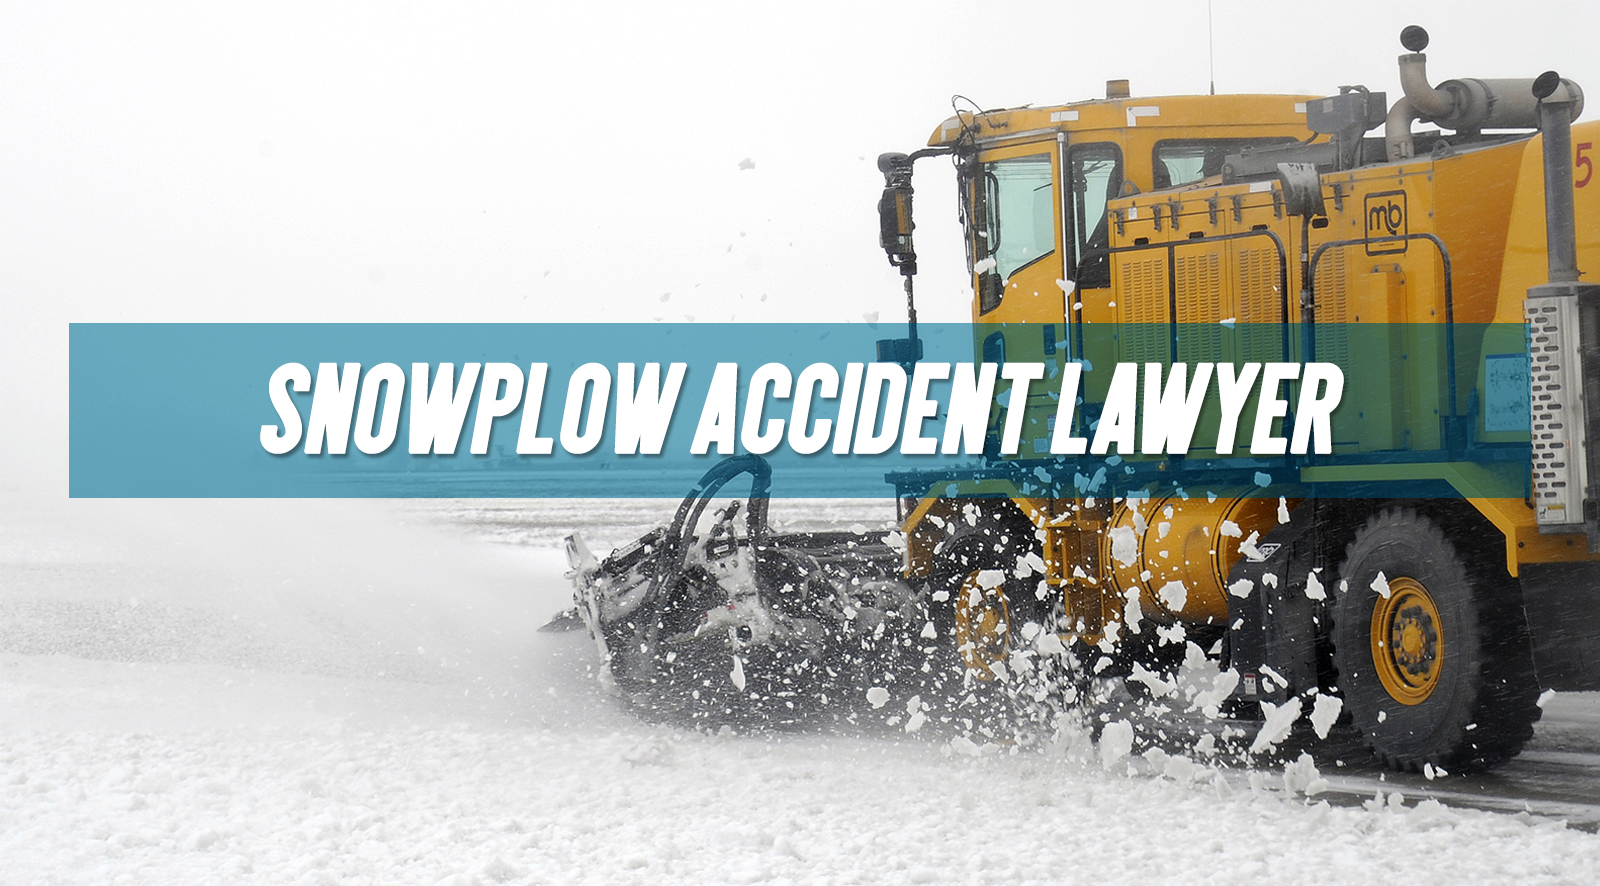 snowplow collision accident lawyer